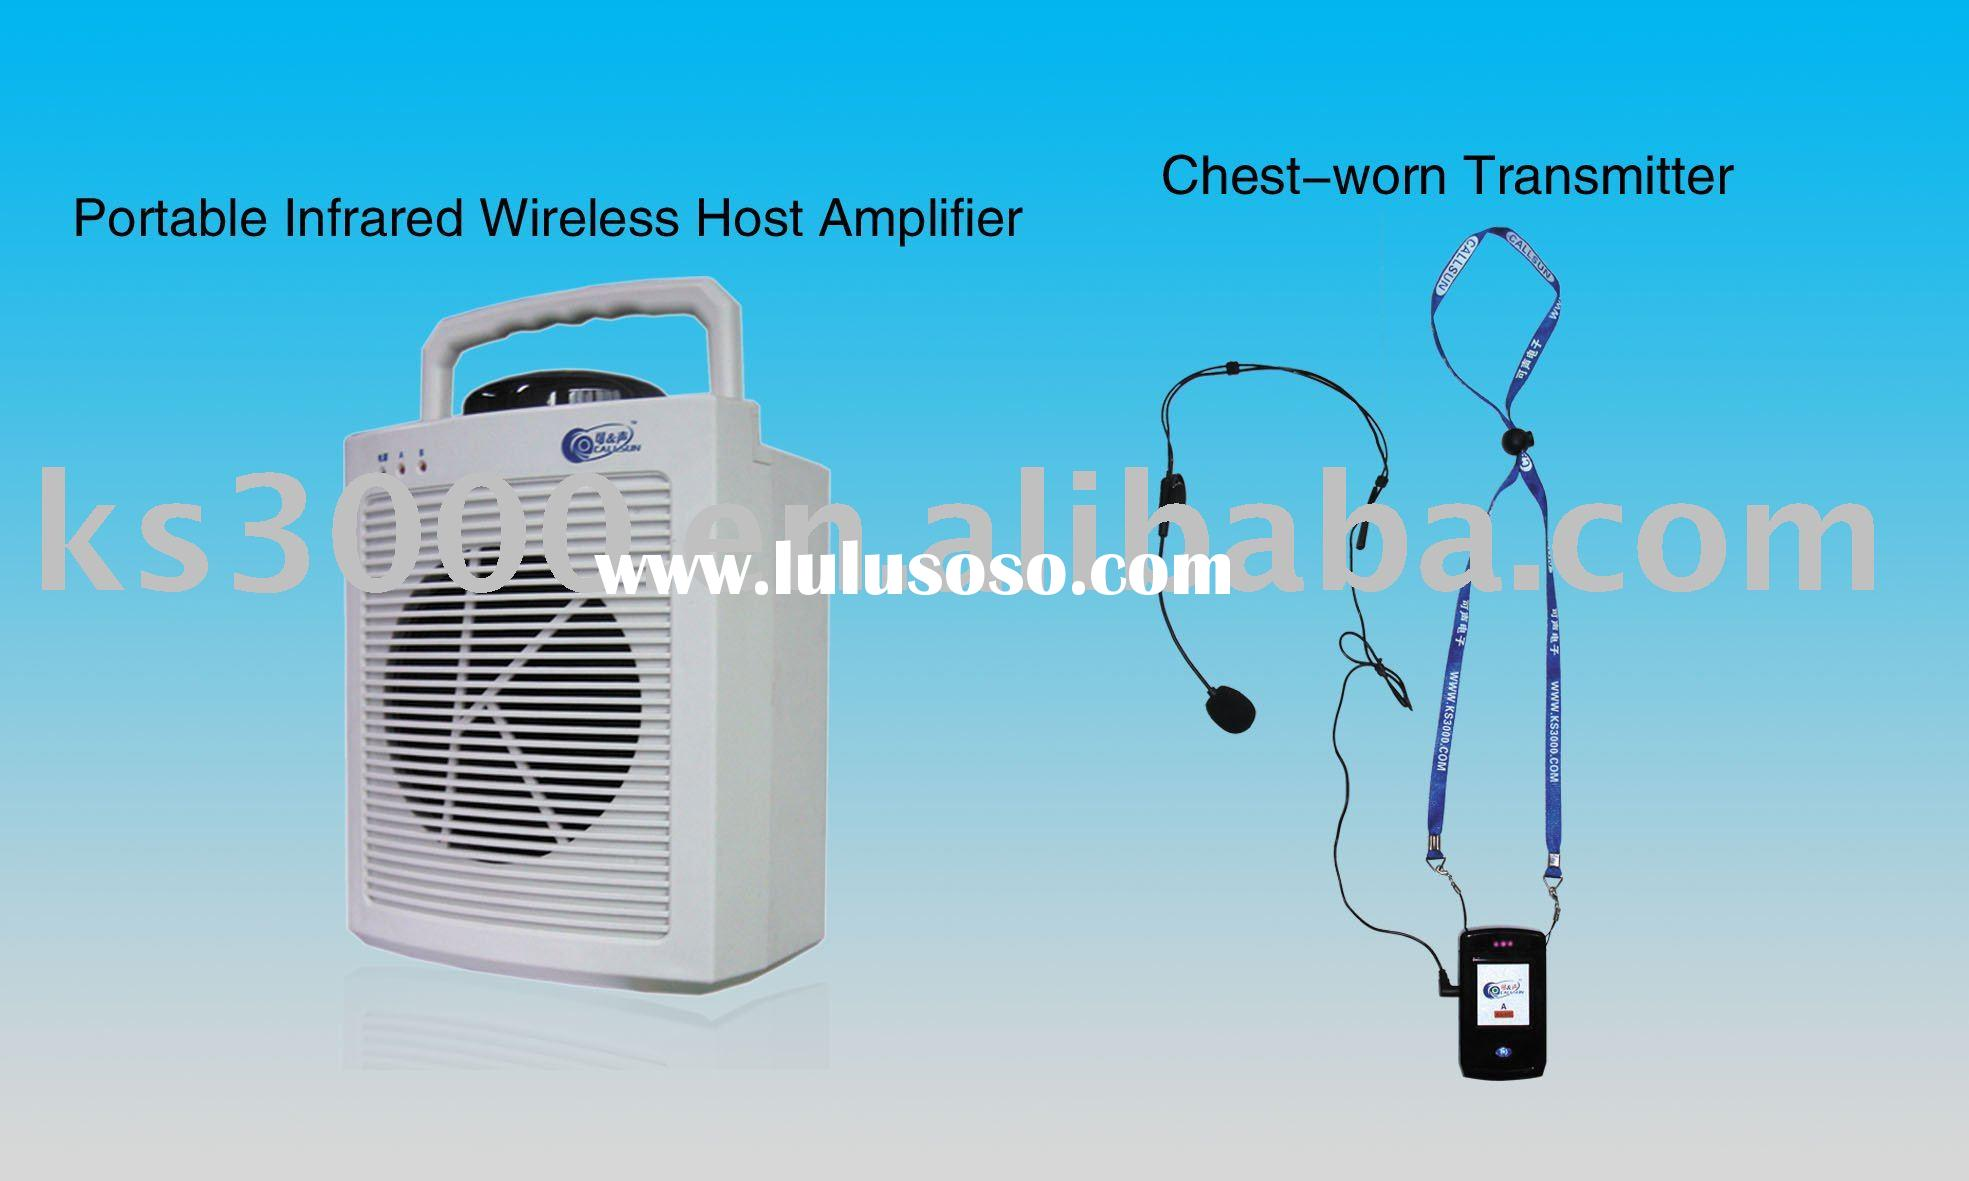 Using in Classroom Infrared Wireless Portable Sound System ks568